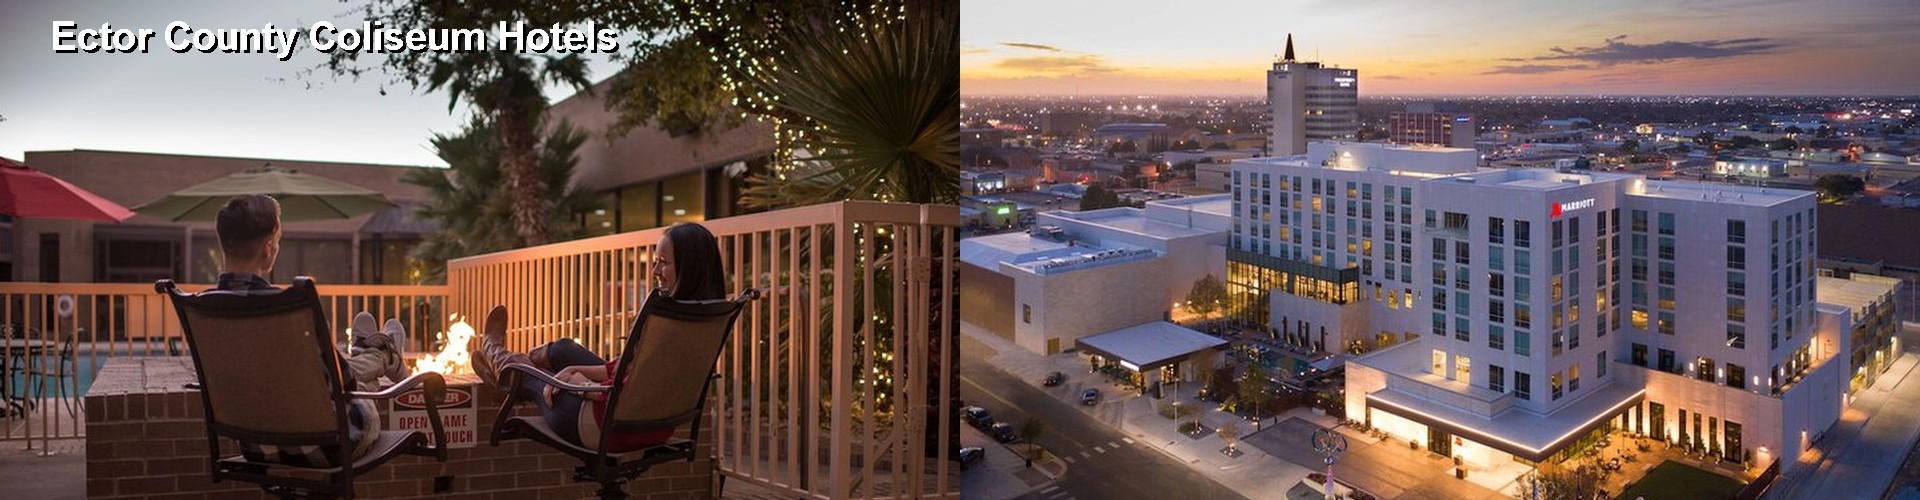 5 Best Hotels near Ector County Coliseum